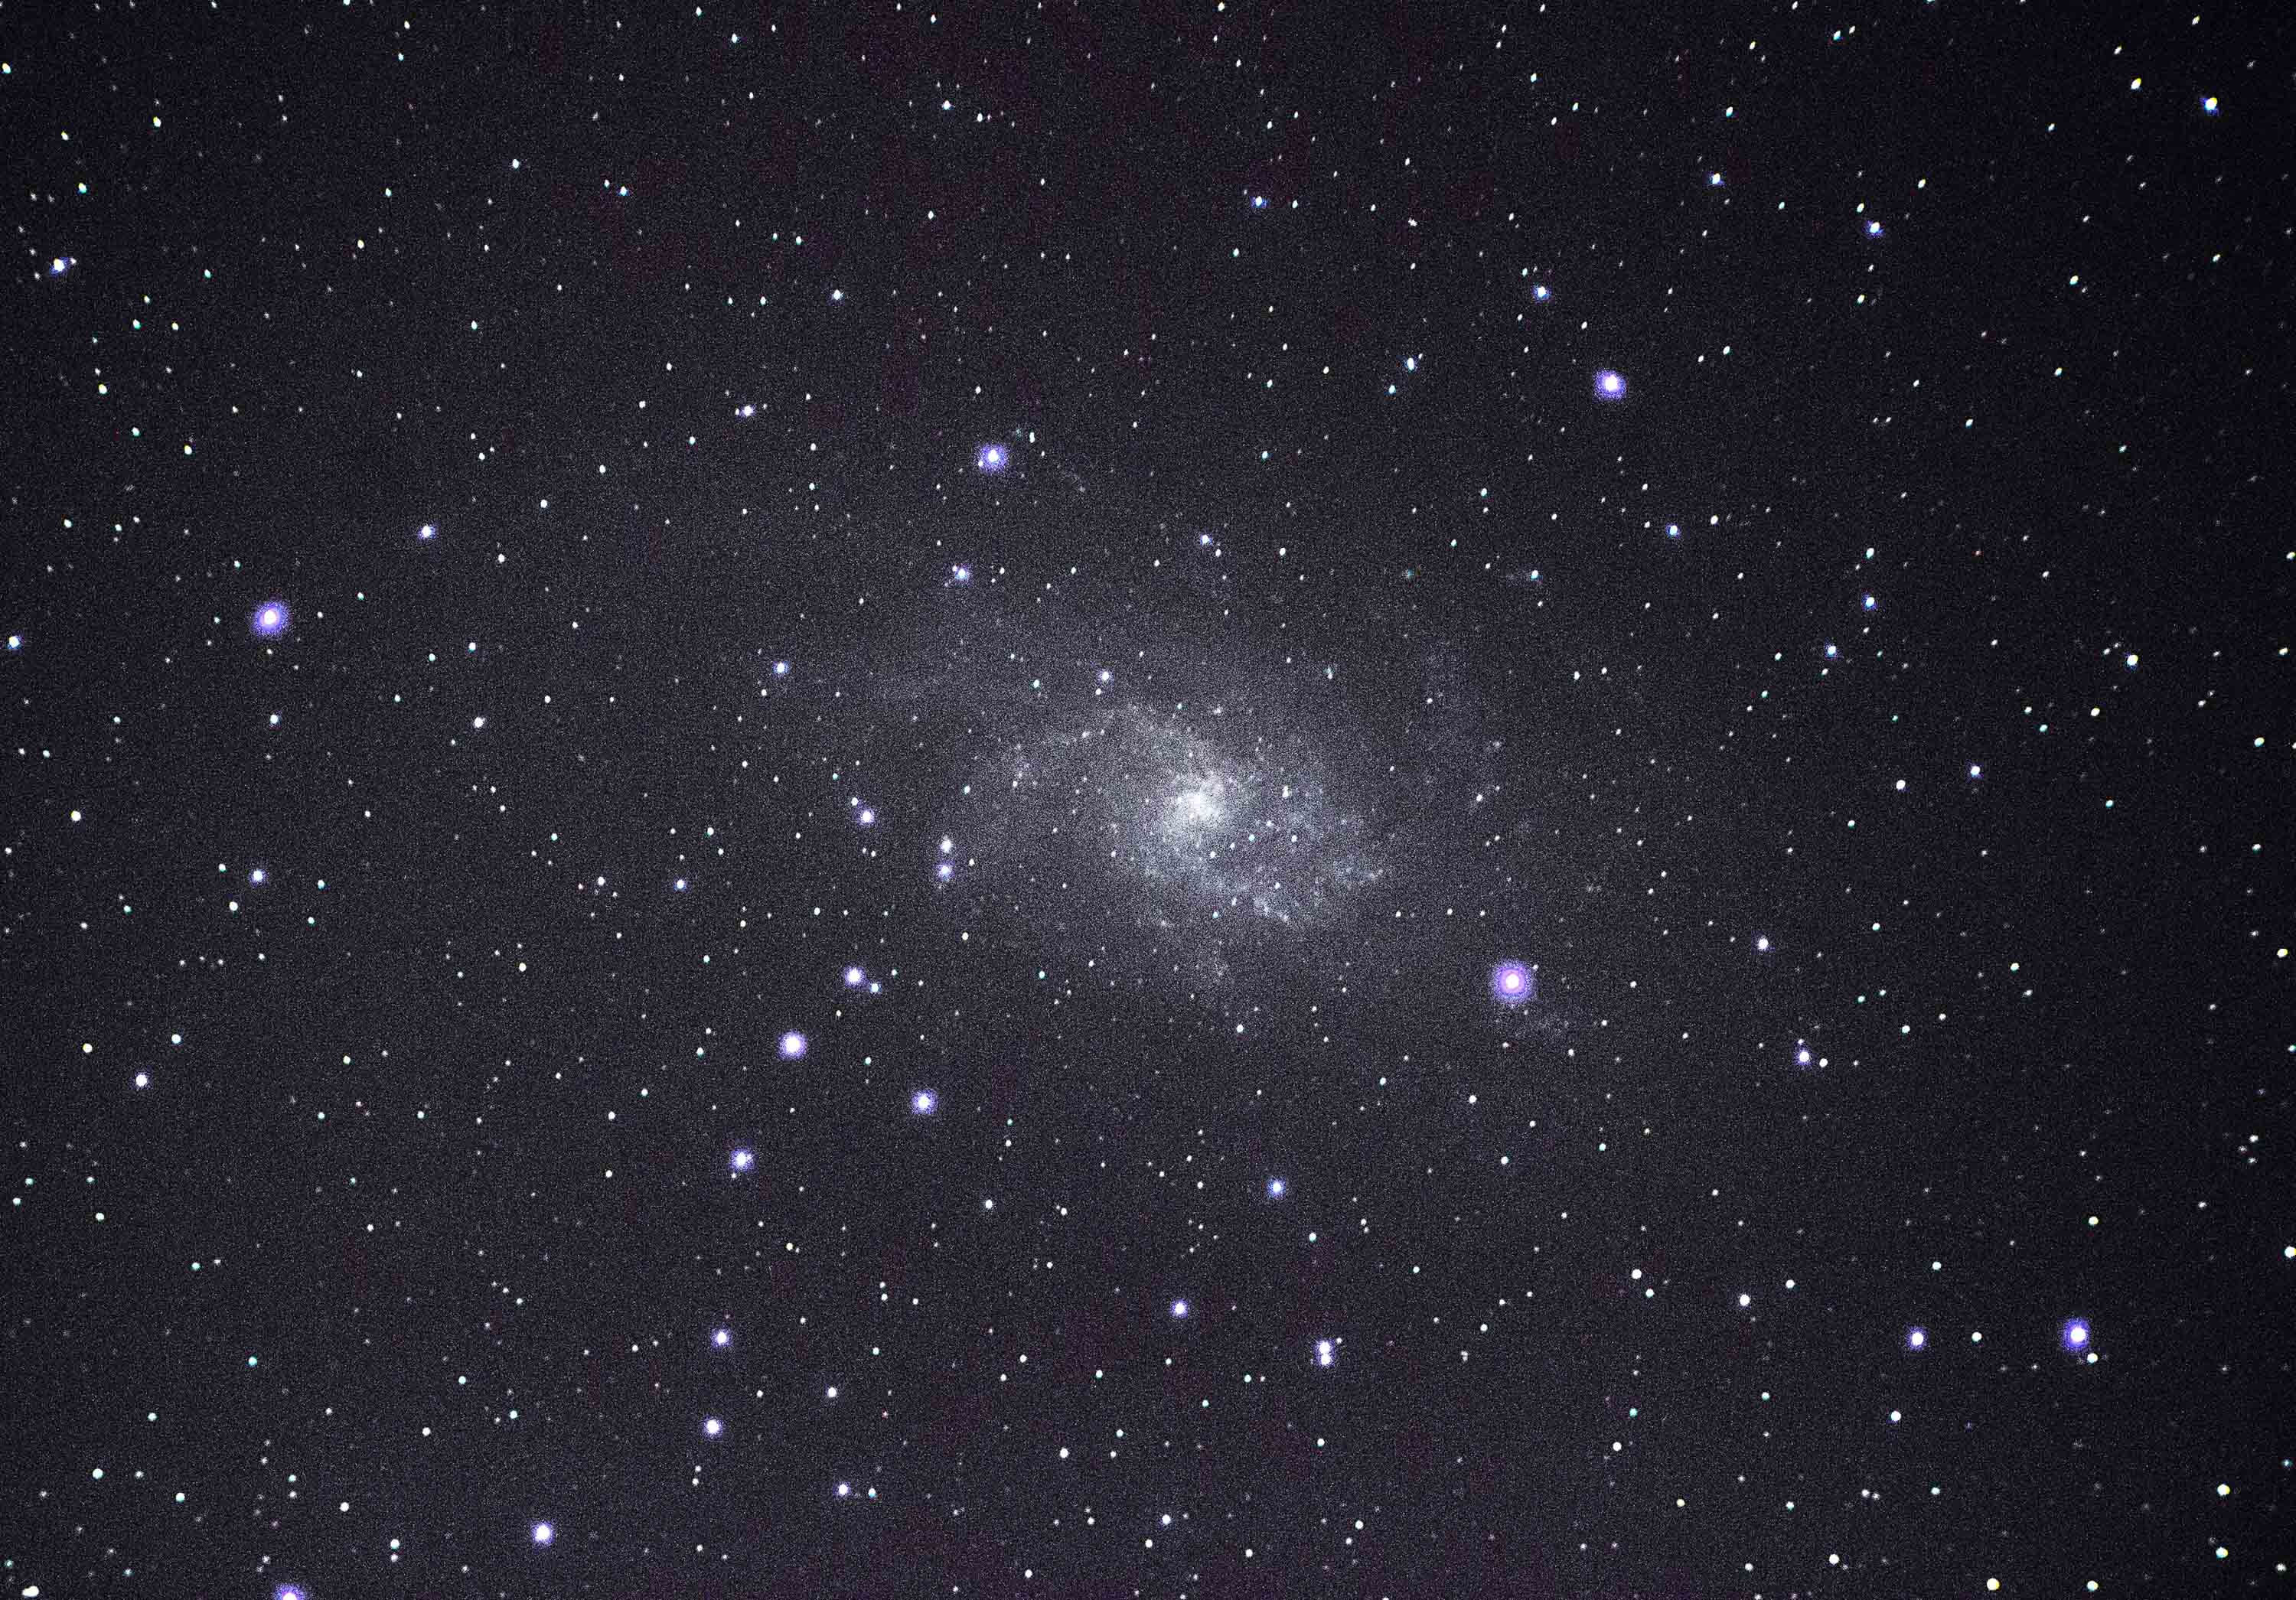 Messier 33 (M33) - The Triangulum Galaxy By Ken Kennedy. 22/11/16  19:42UT. Canon EOS 100D. 125 seconds  ISO-1600